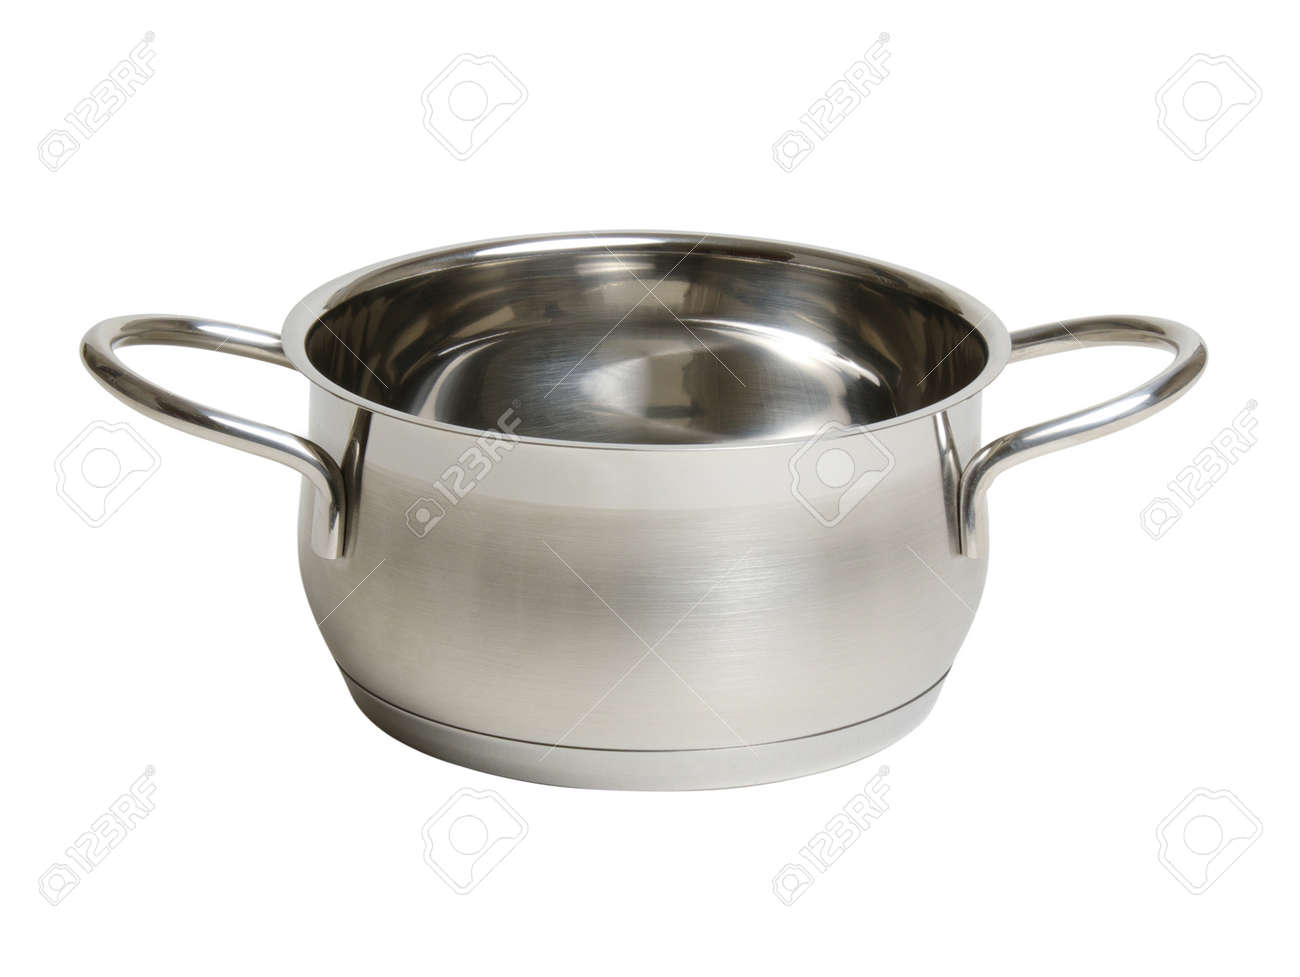 steel cooking pot isolated on white - 50767868